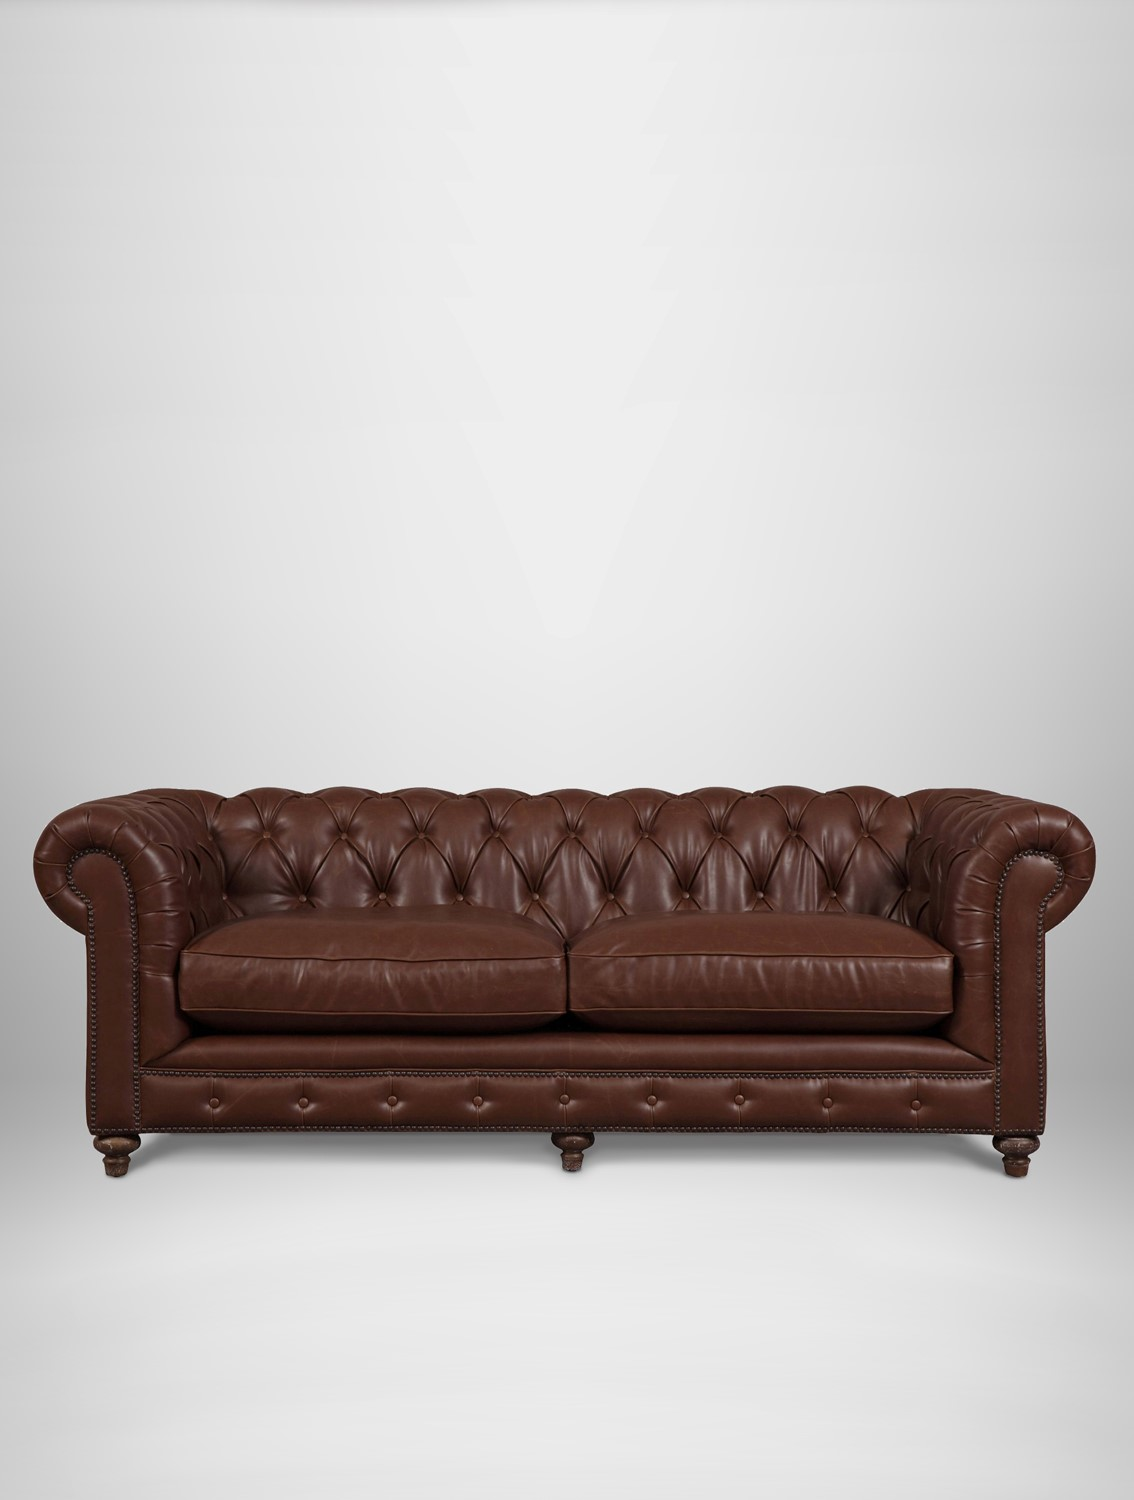 brown chesterfield sofa furniture in dubai bed baci living room